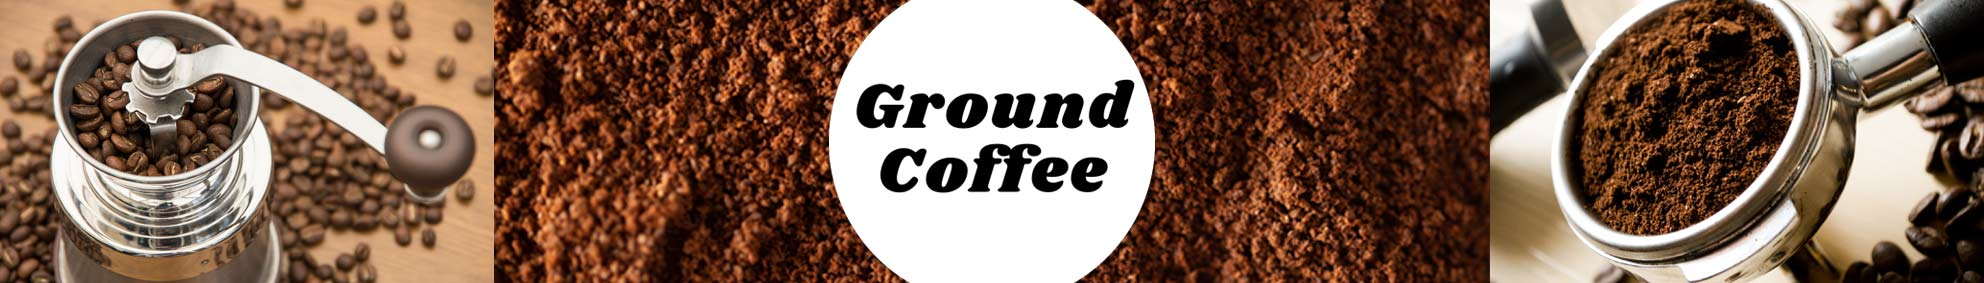 Ground Coffee Subscription and Grinders